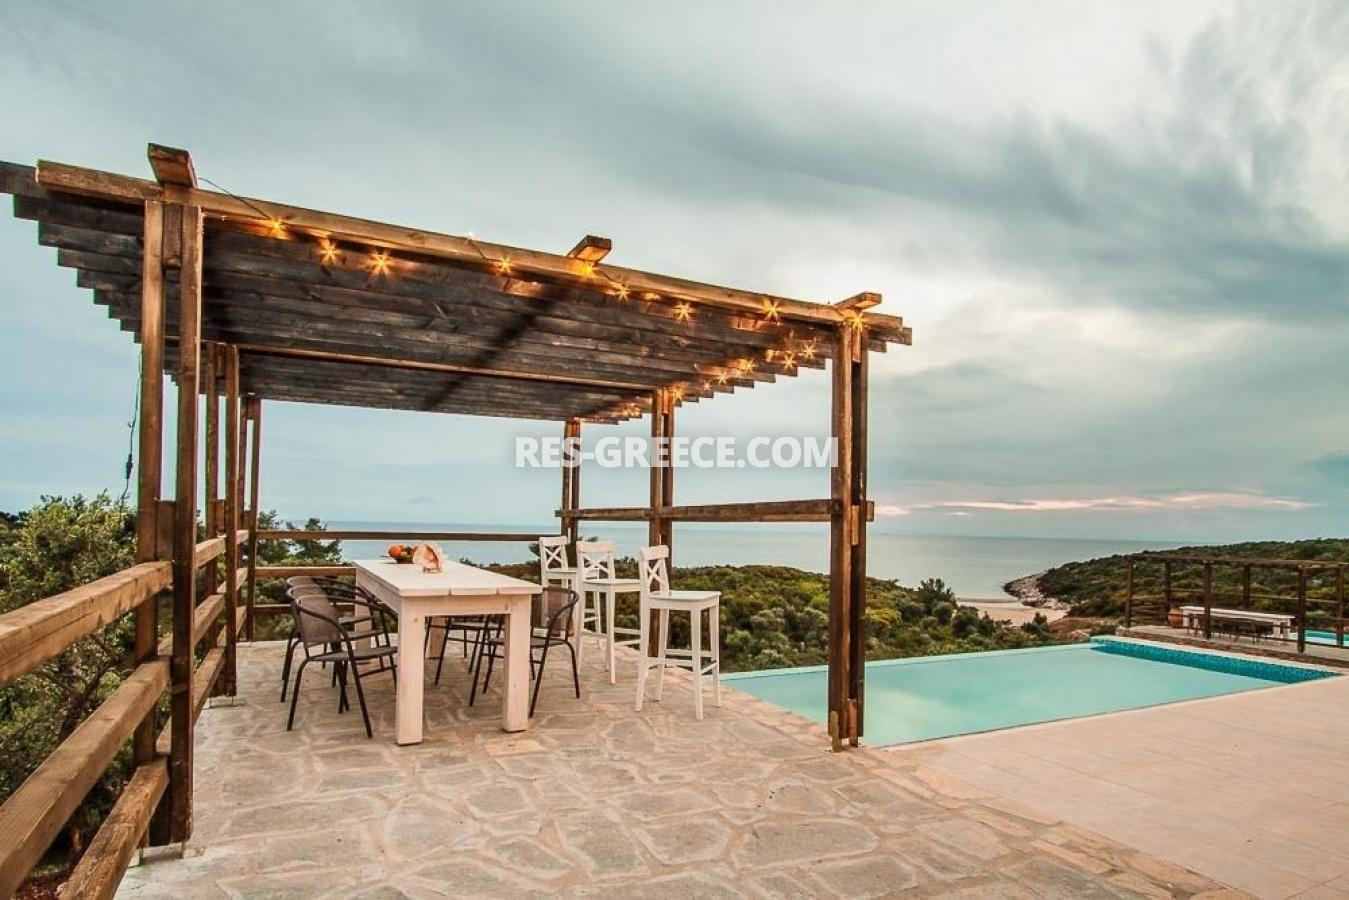 Villa MM, Northern Aegean Islands, Greece - 2 luxury properties in a gated complex with private beach - Photo 22